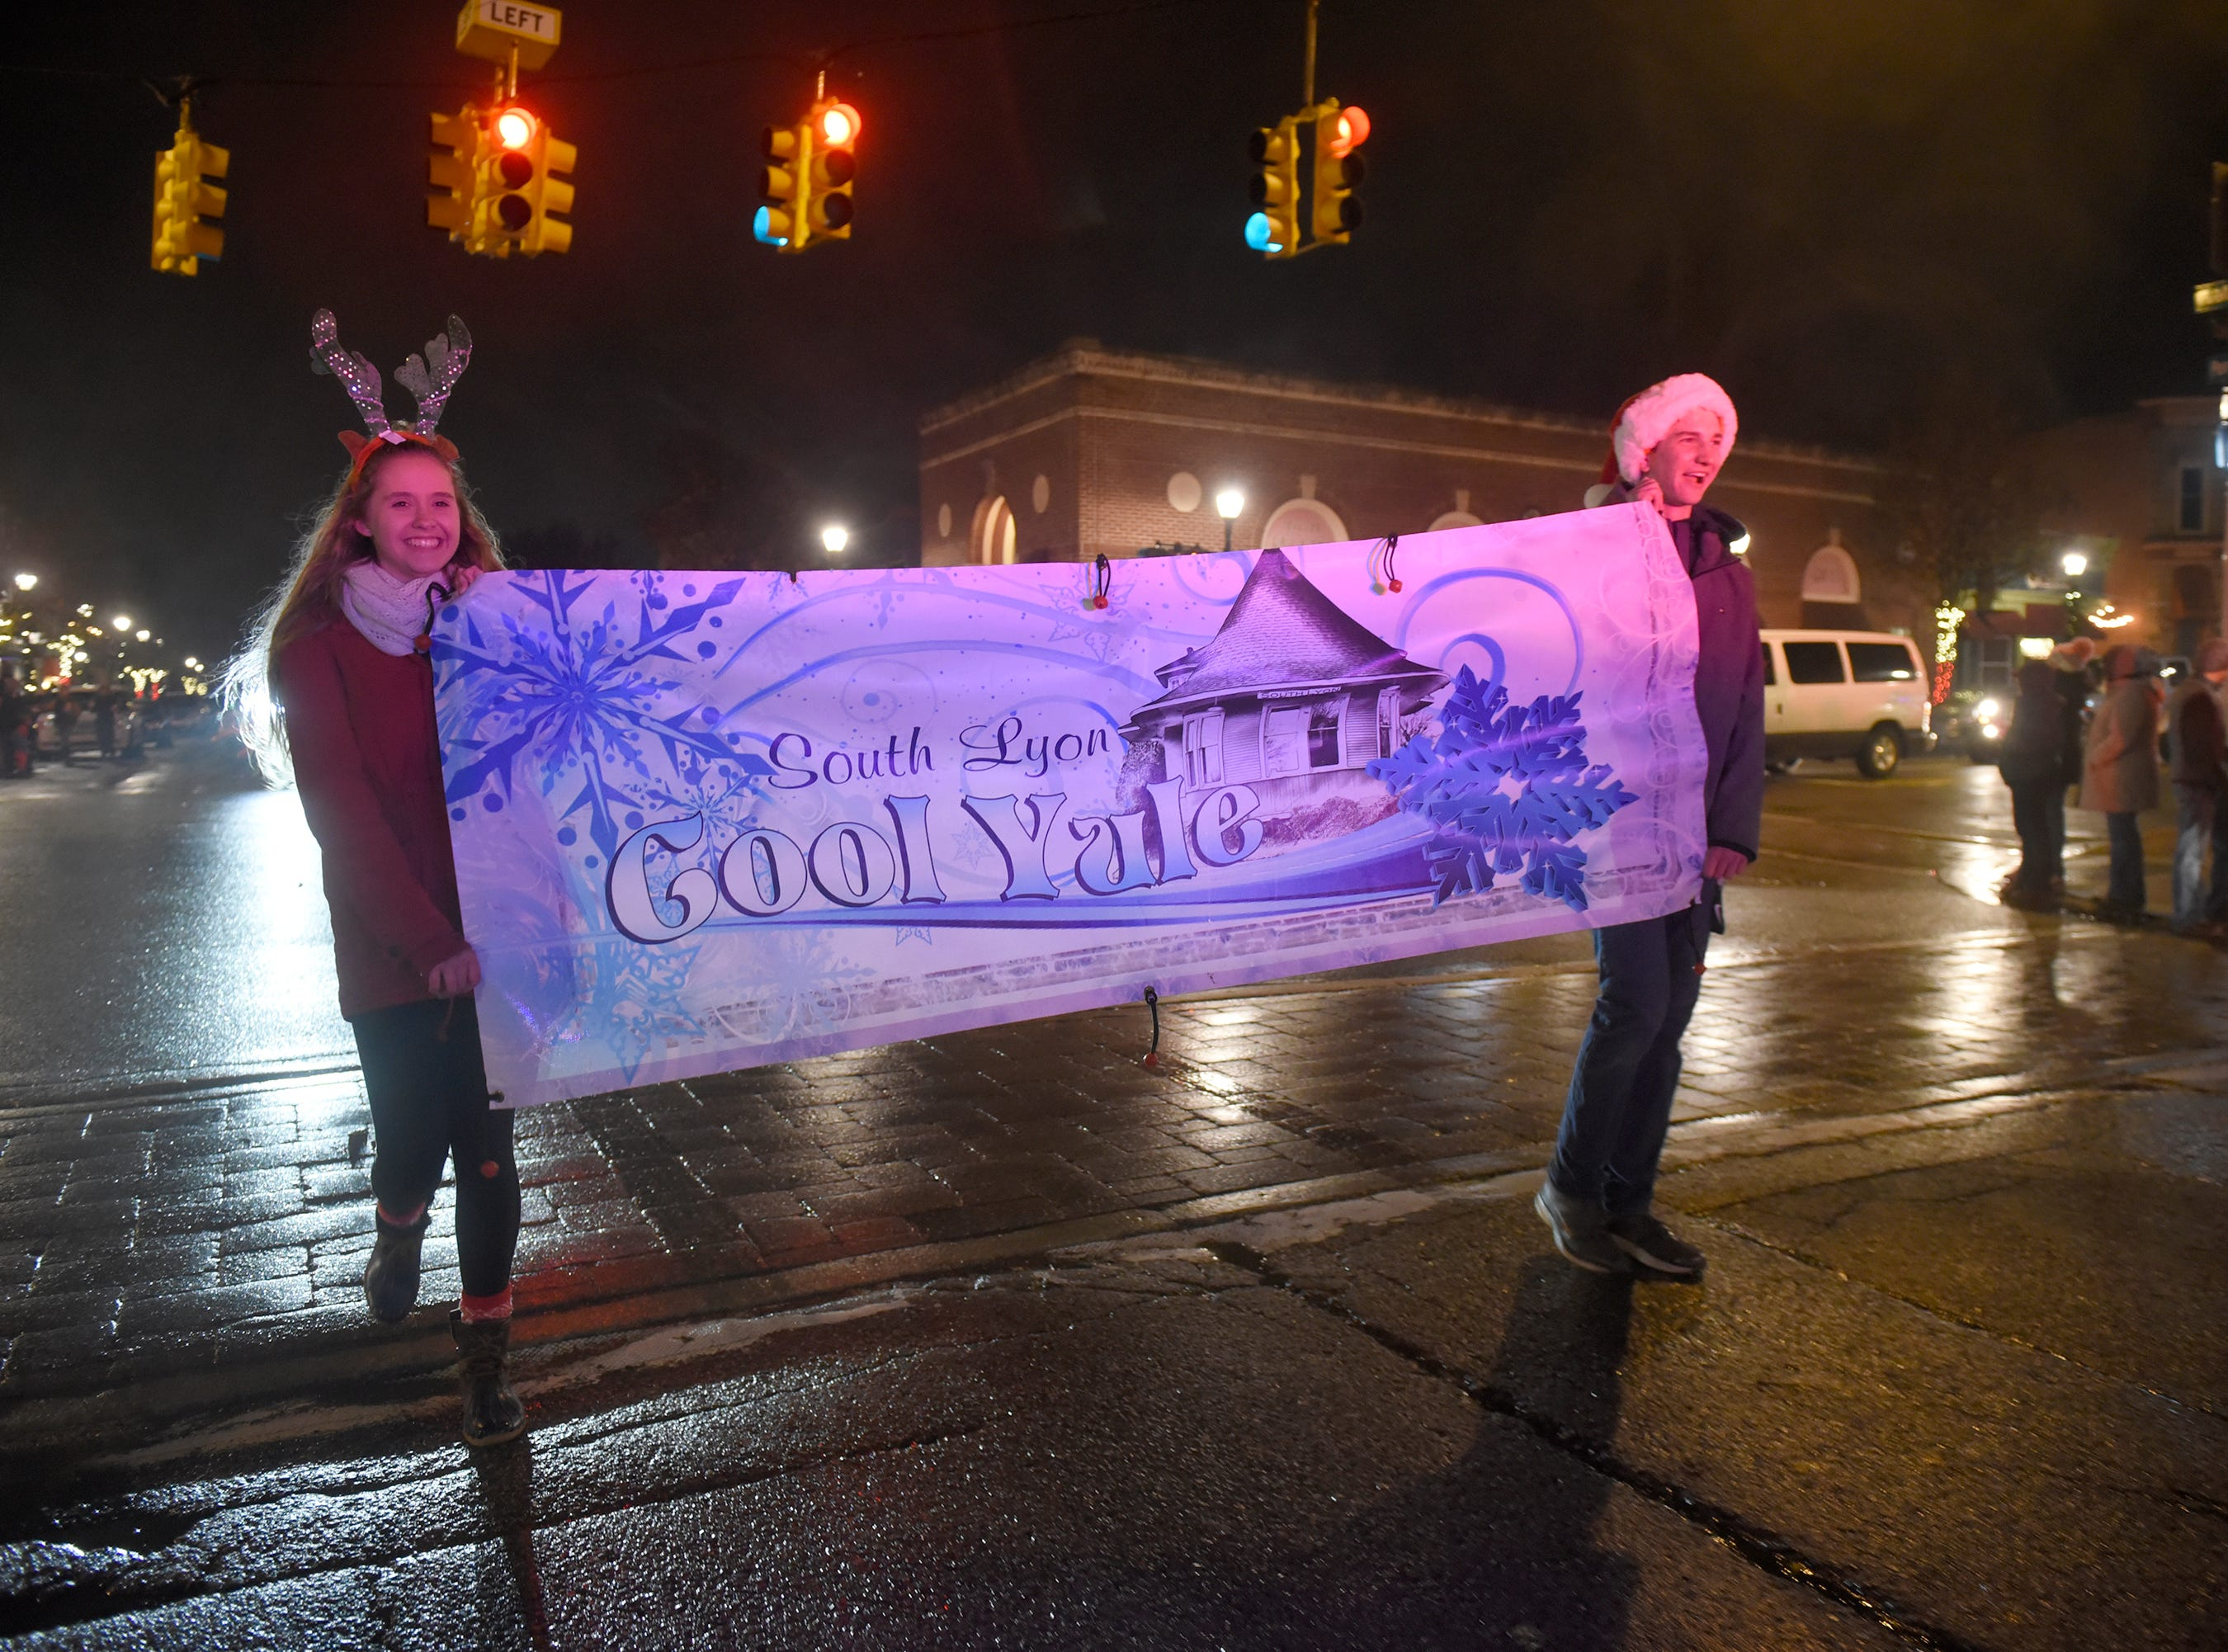 The Lighted Parade heads down Lafayette Street in downtown South Lyon during the Cool Yule celebration Dec. 1, 2018.